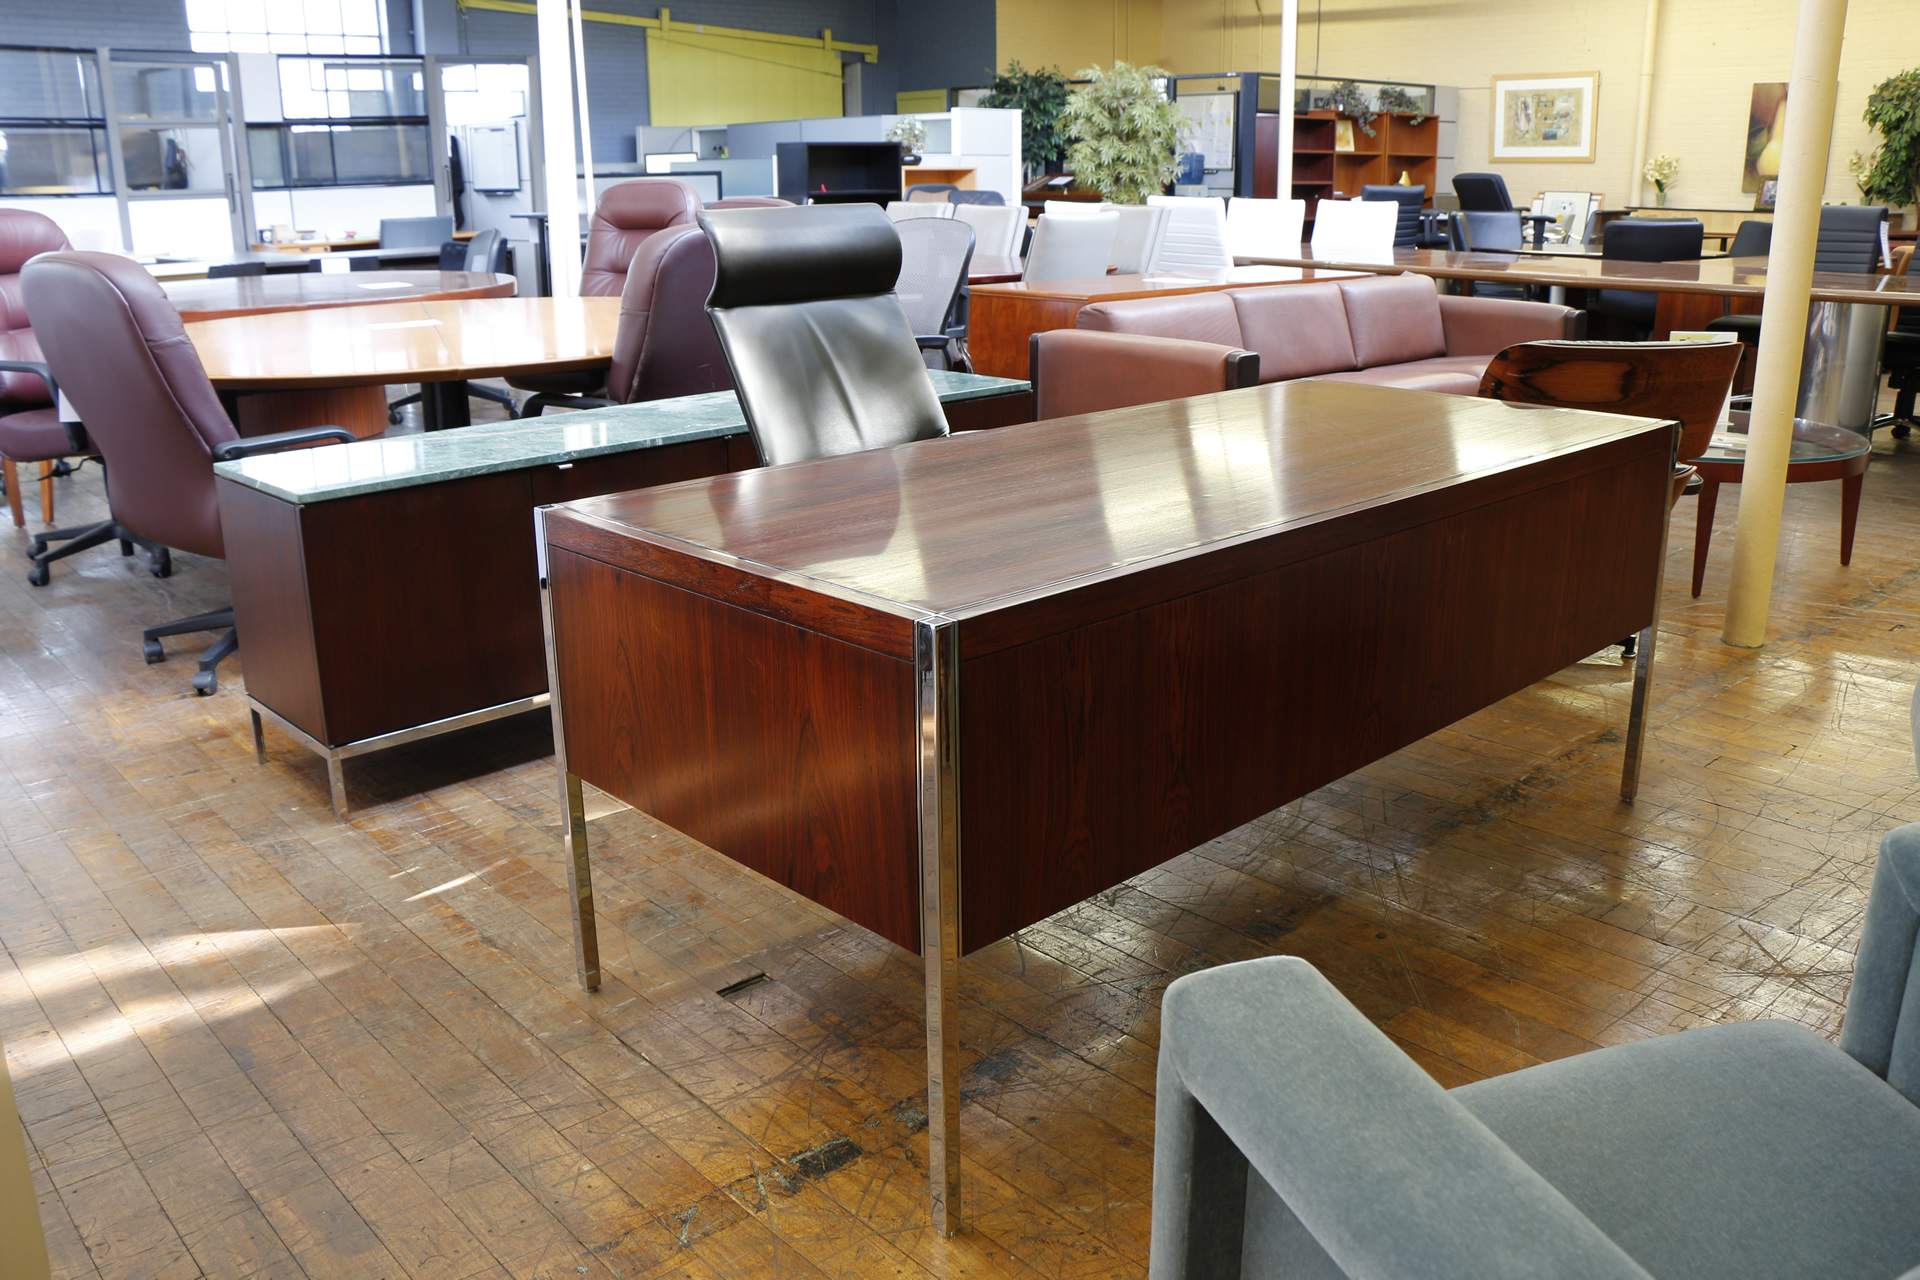 peartreeofficefurniture_peartreeofficefurniture_mg_4438.jpg